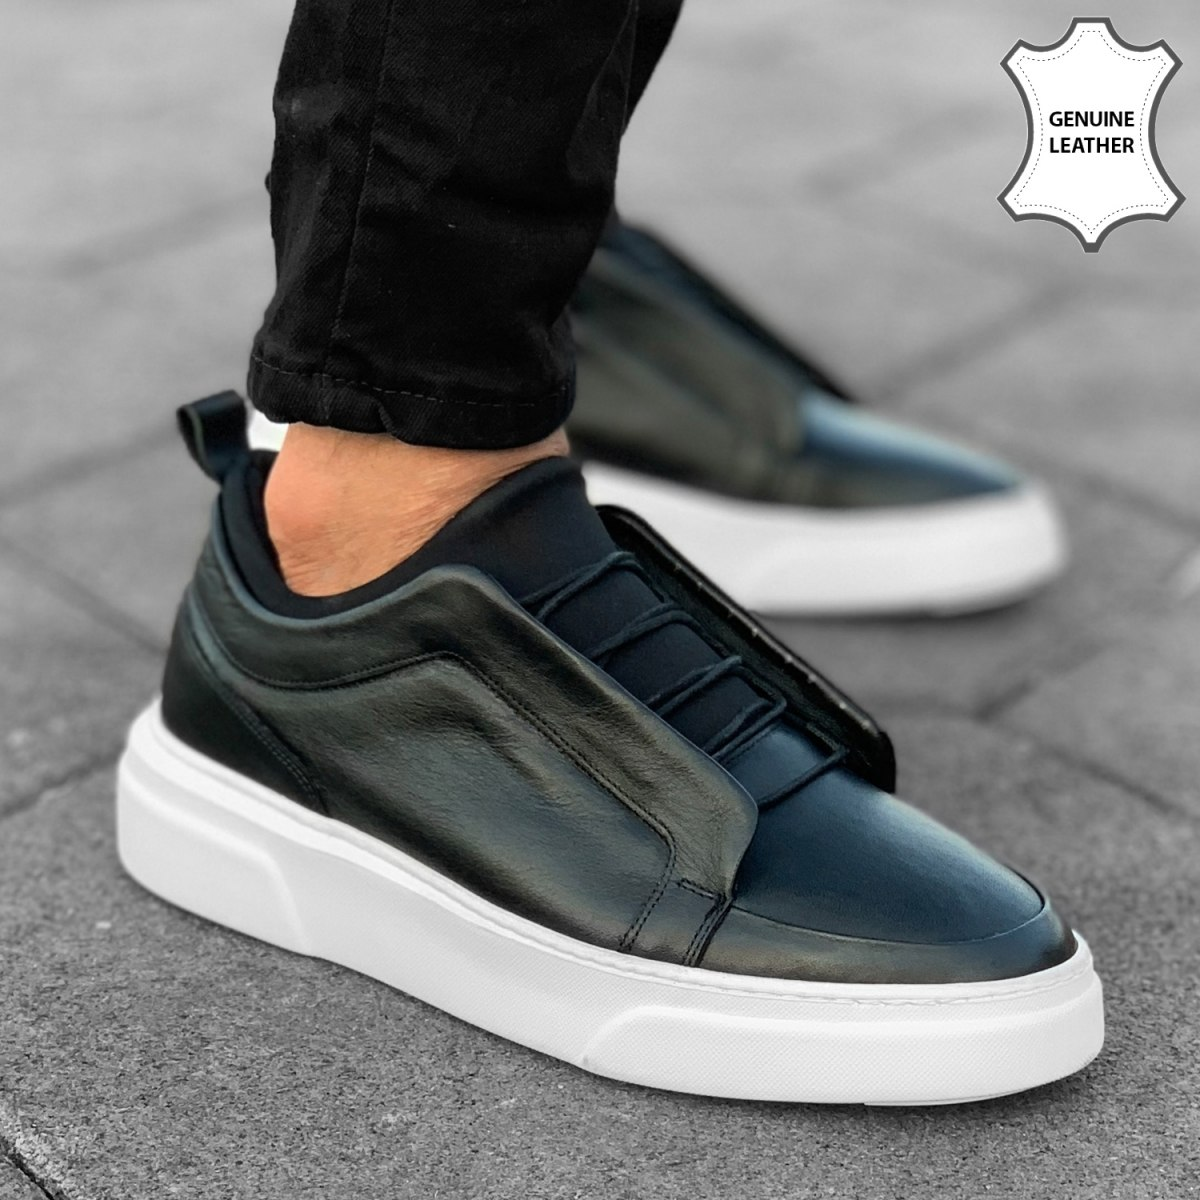 Premium Leather In-Laced Sneakers in Black-White